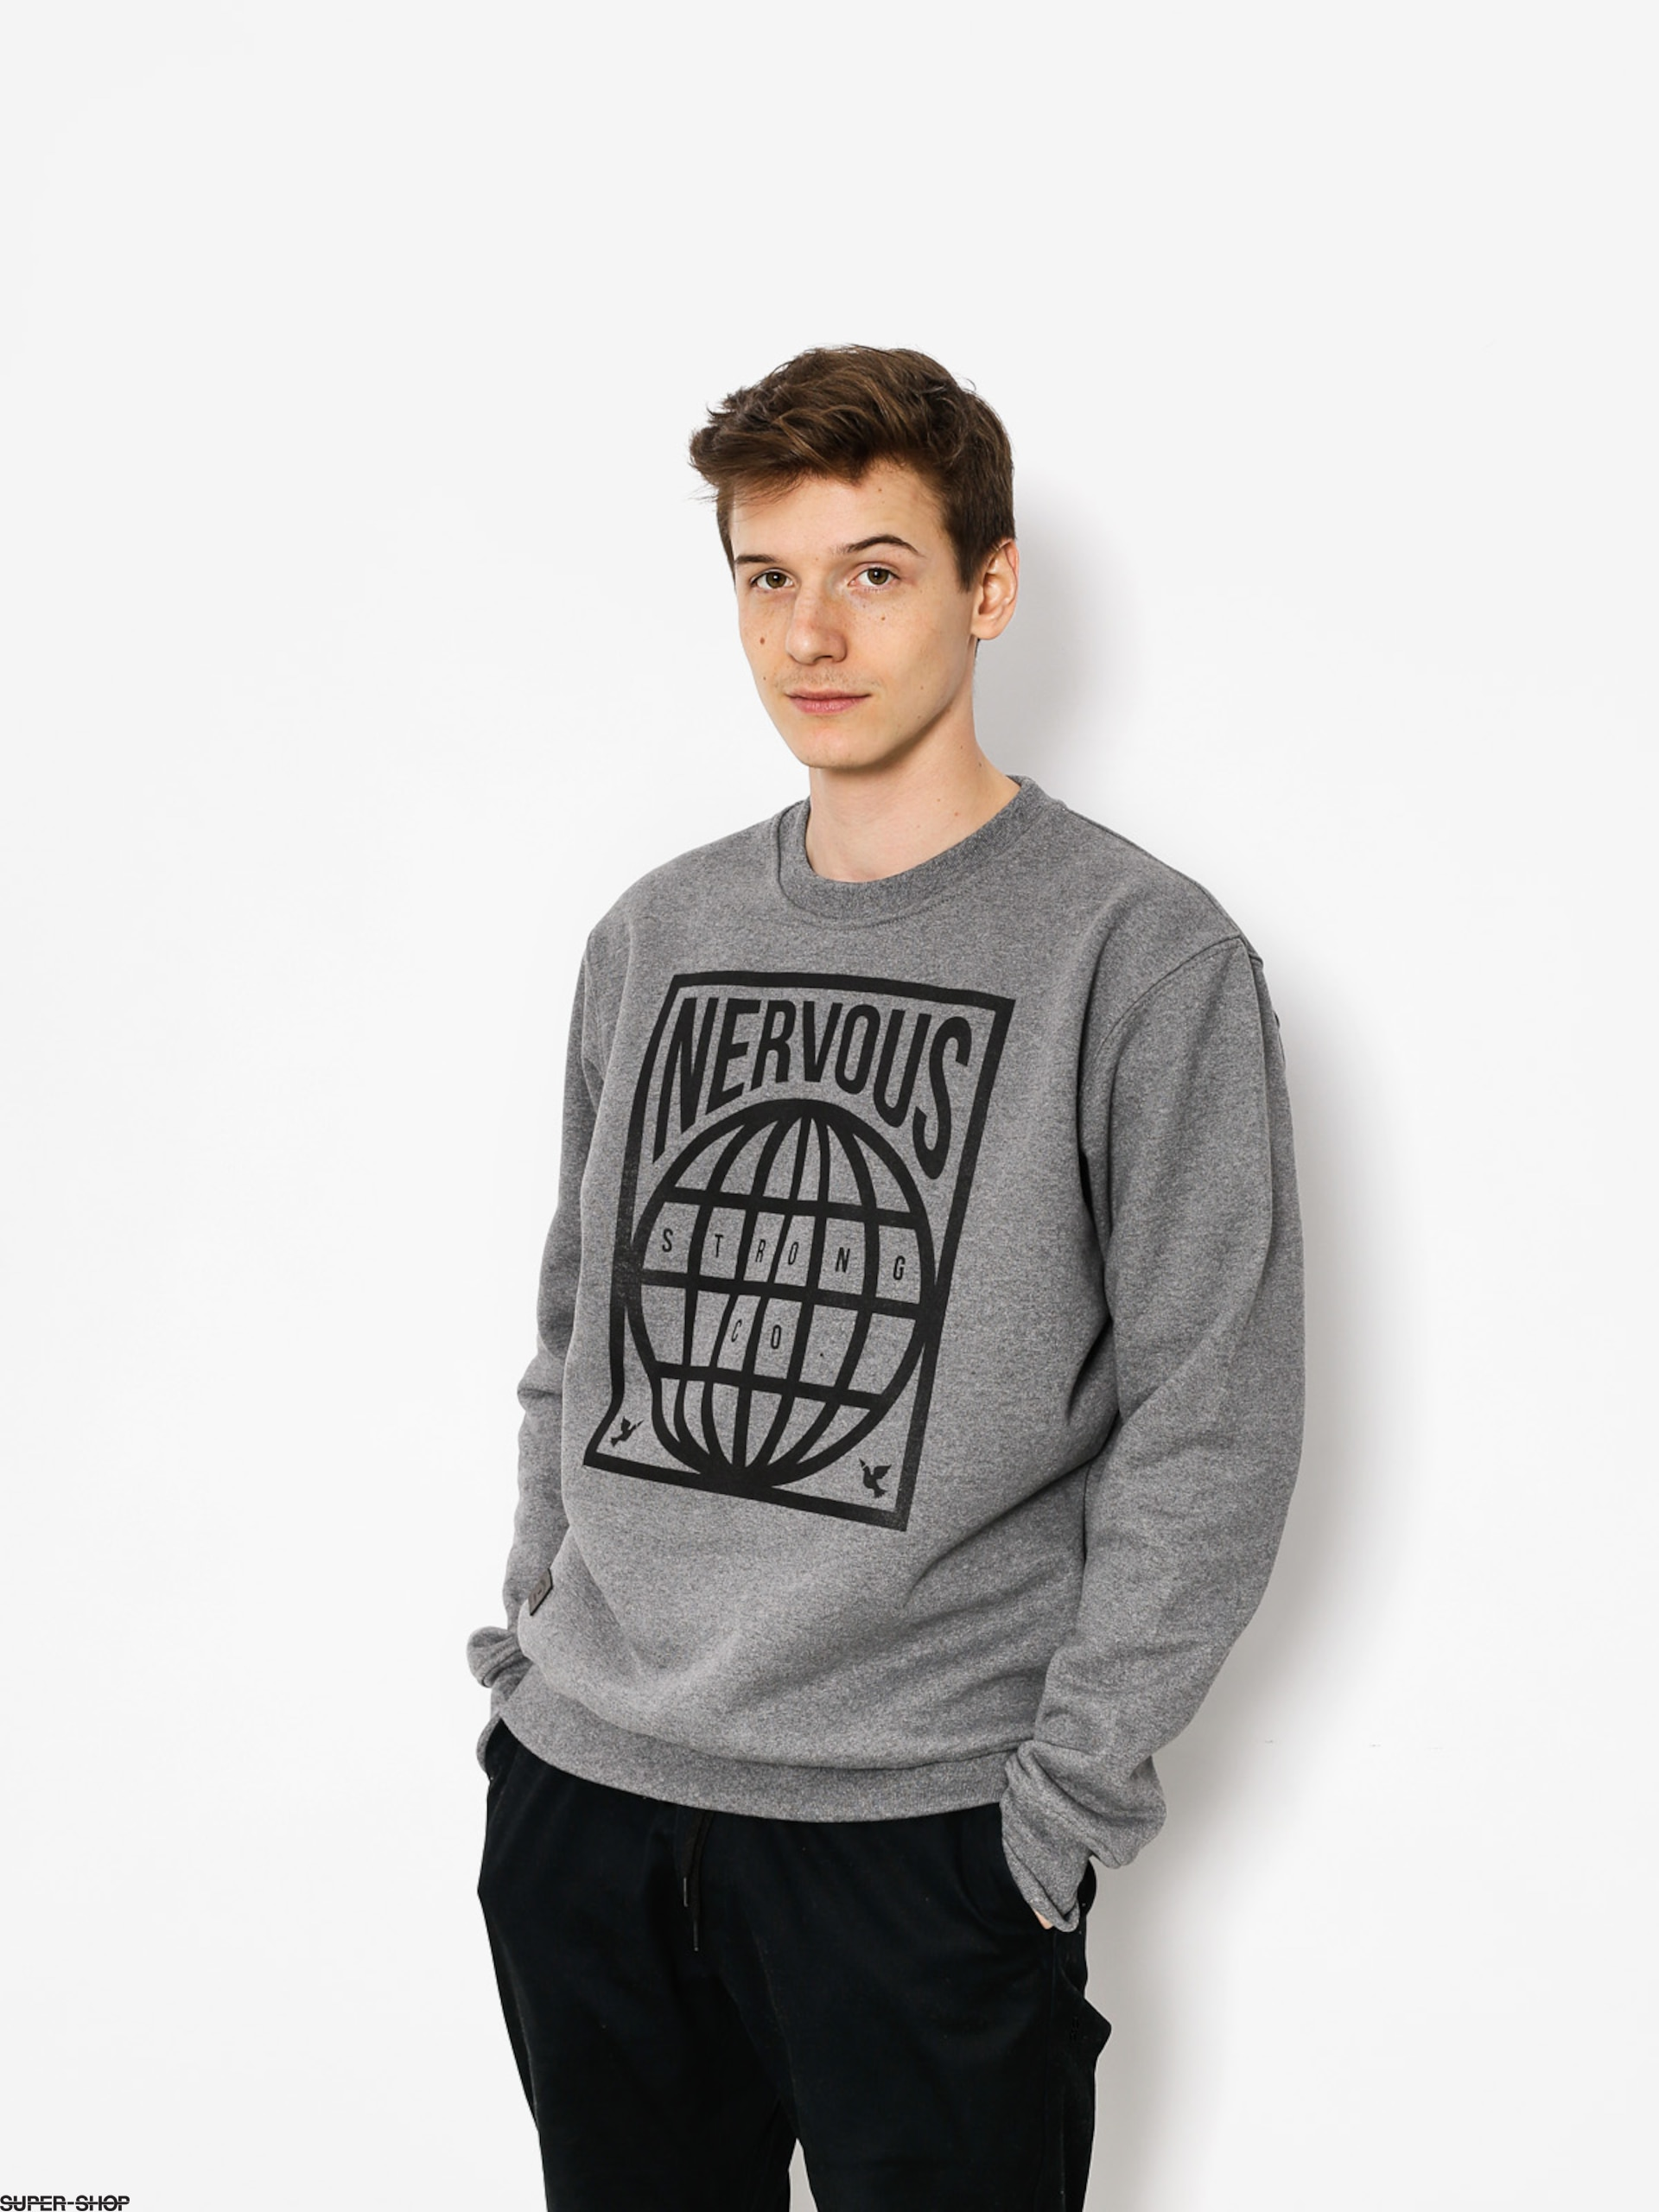 Nervous Sweatshirt Map (grey)